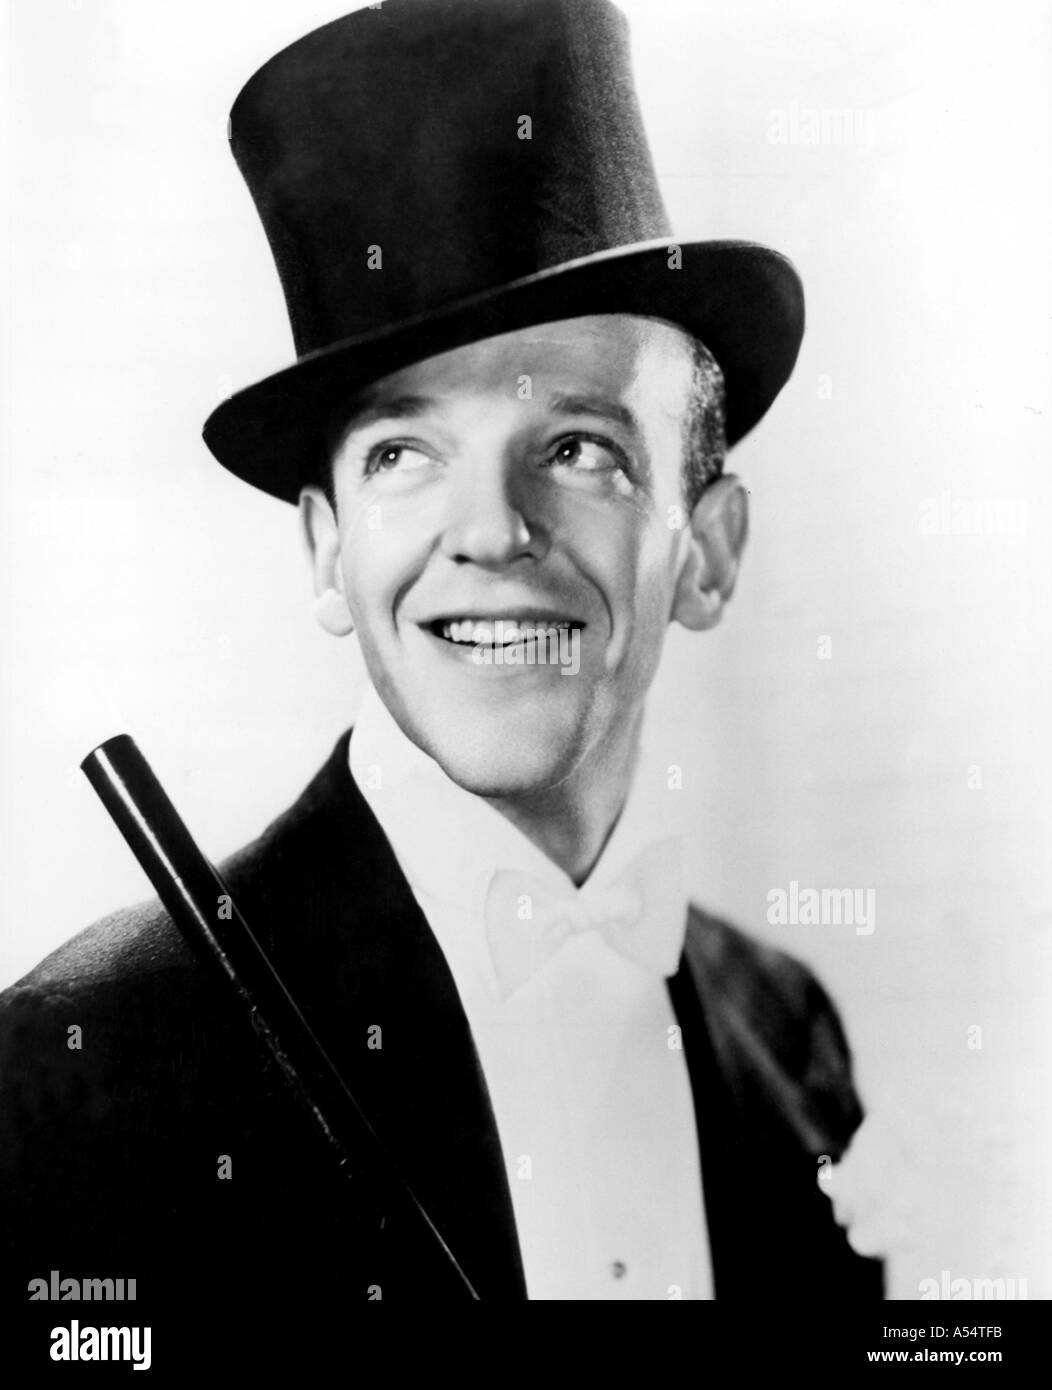 FRED ASTAIRE US actor and dancer 1899 1987 - Stock Image